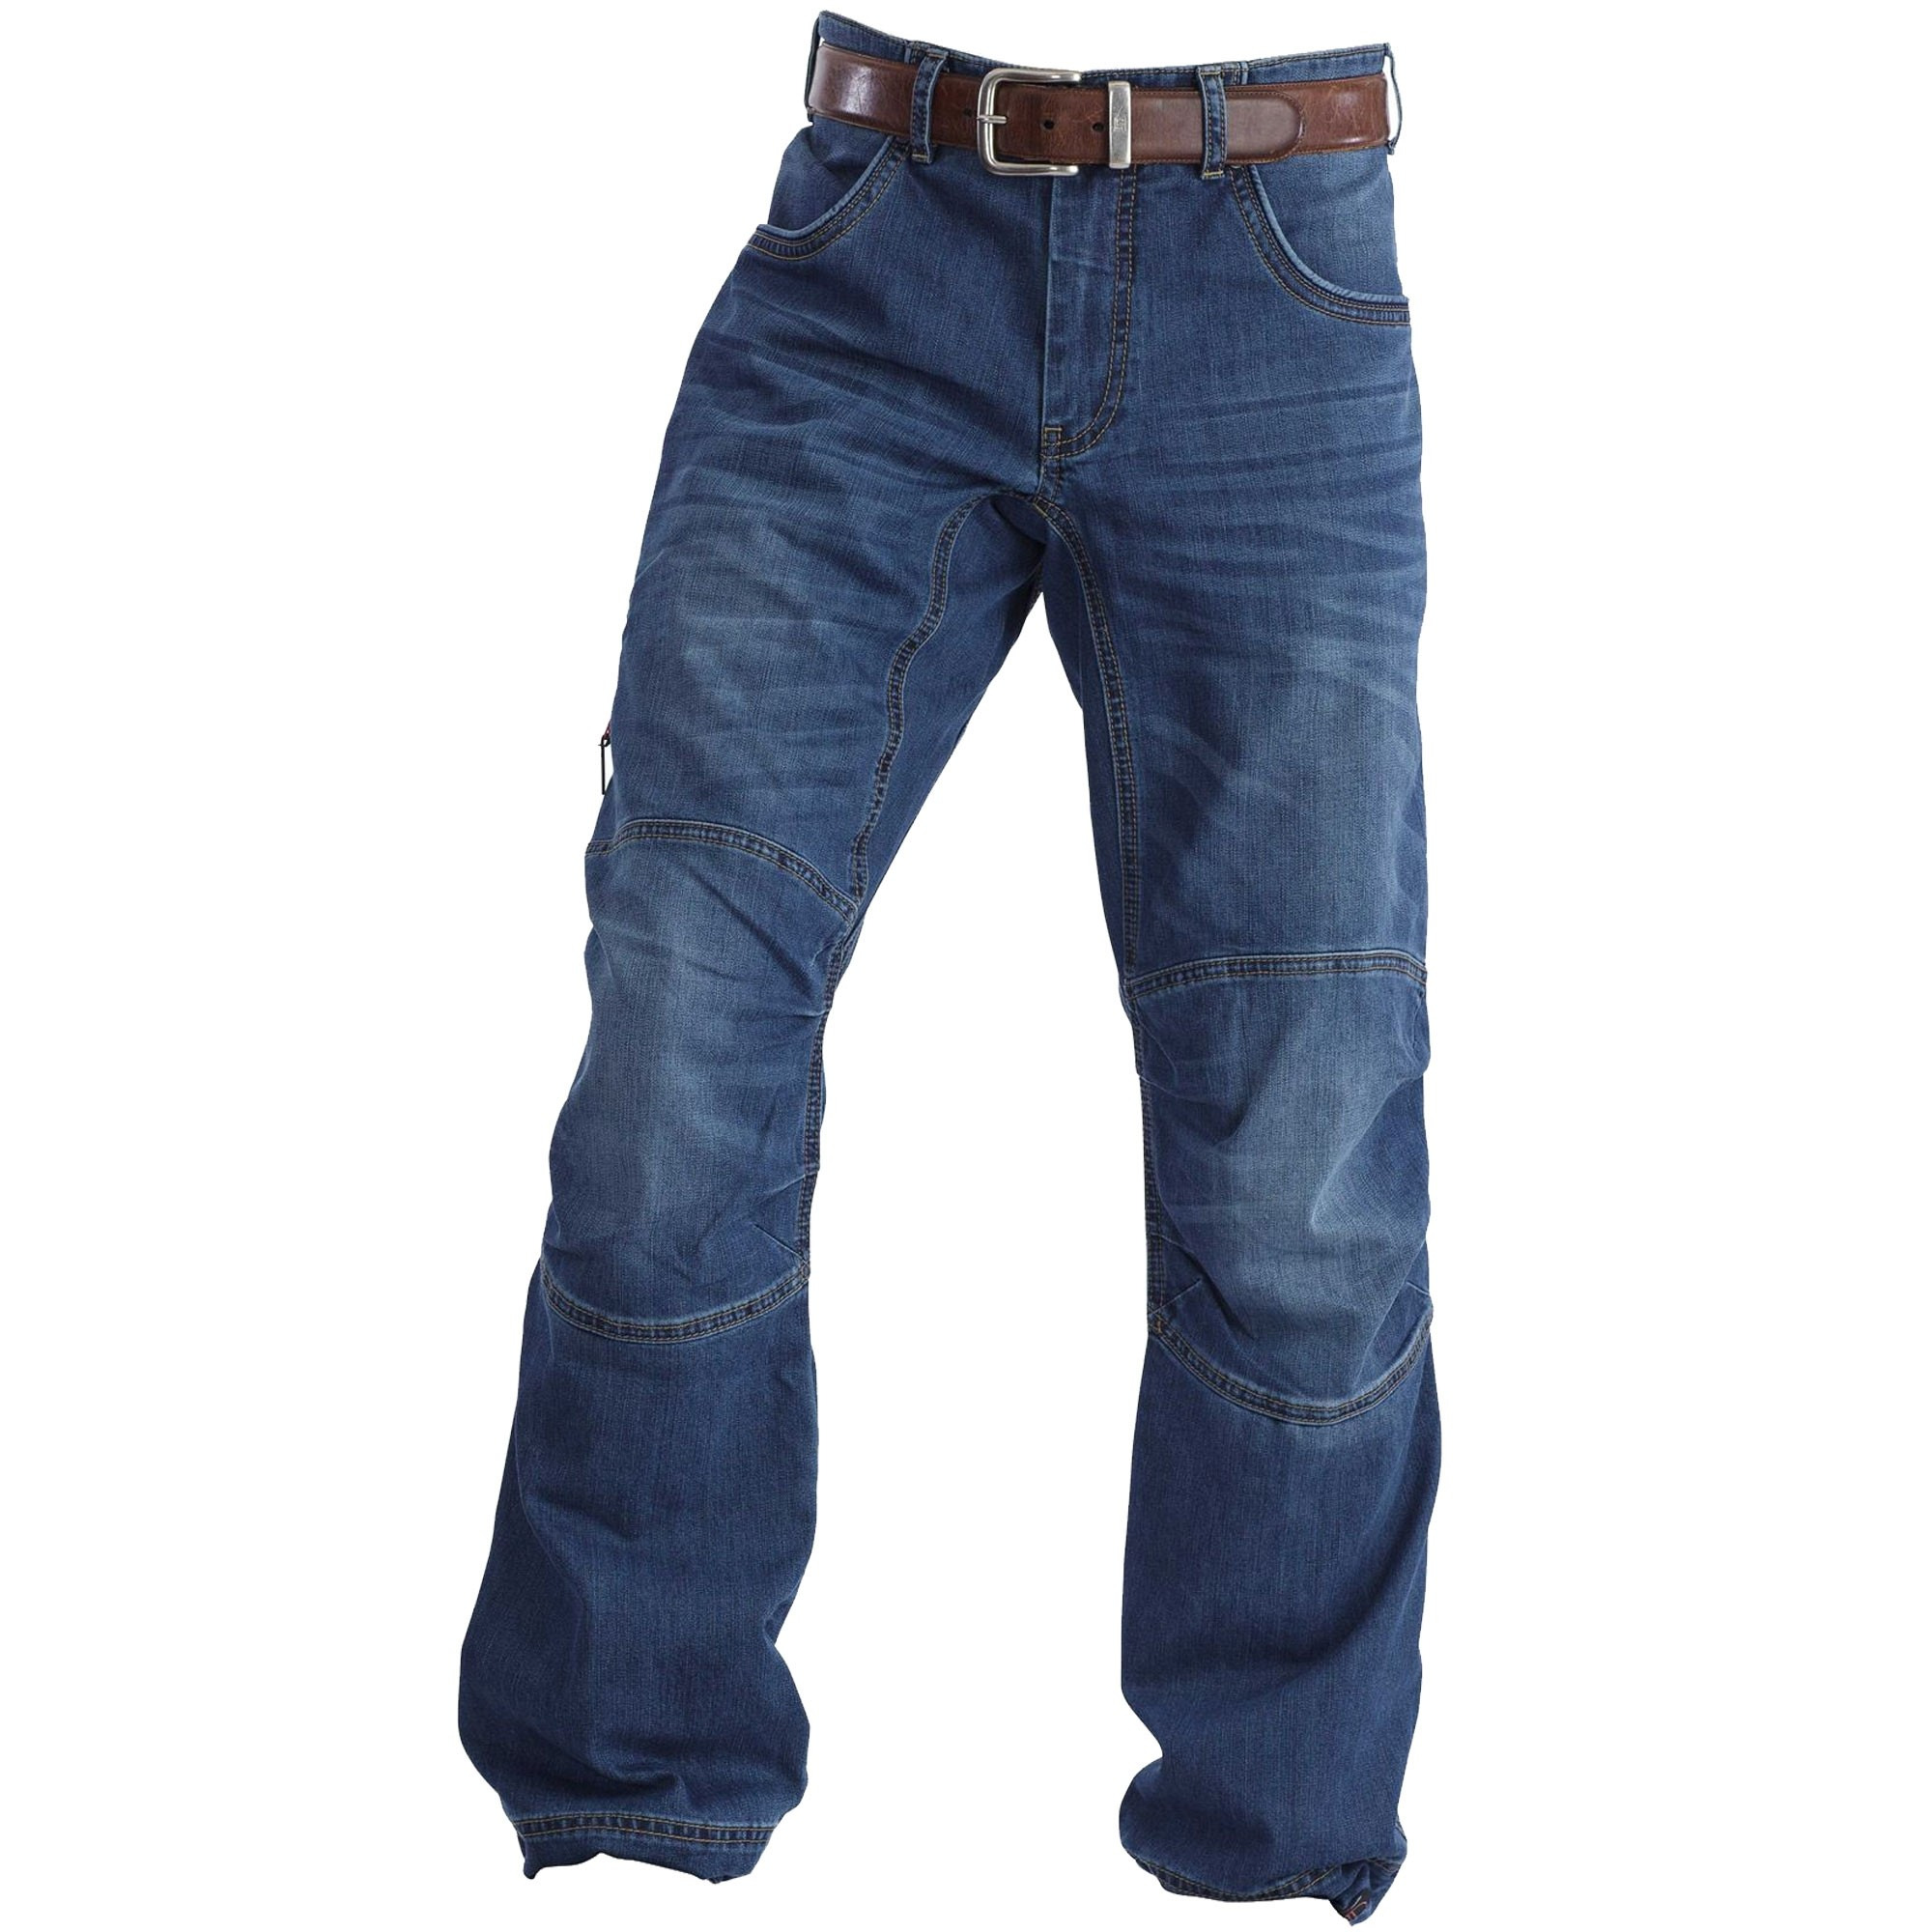 Wild-Country-Motion-Jean-Jeans-Blue-front-S17